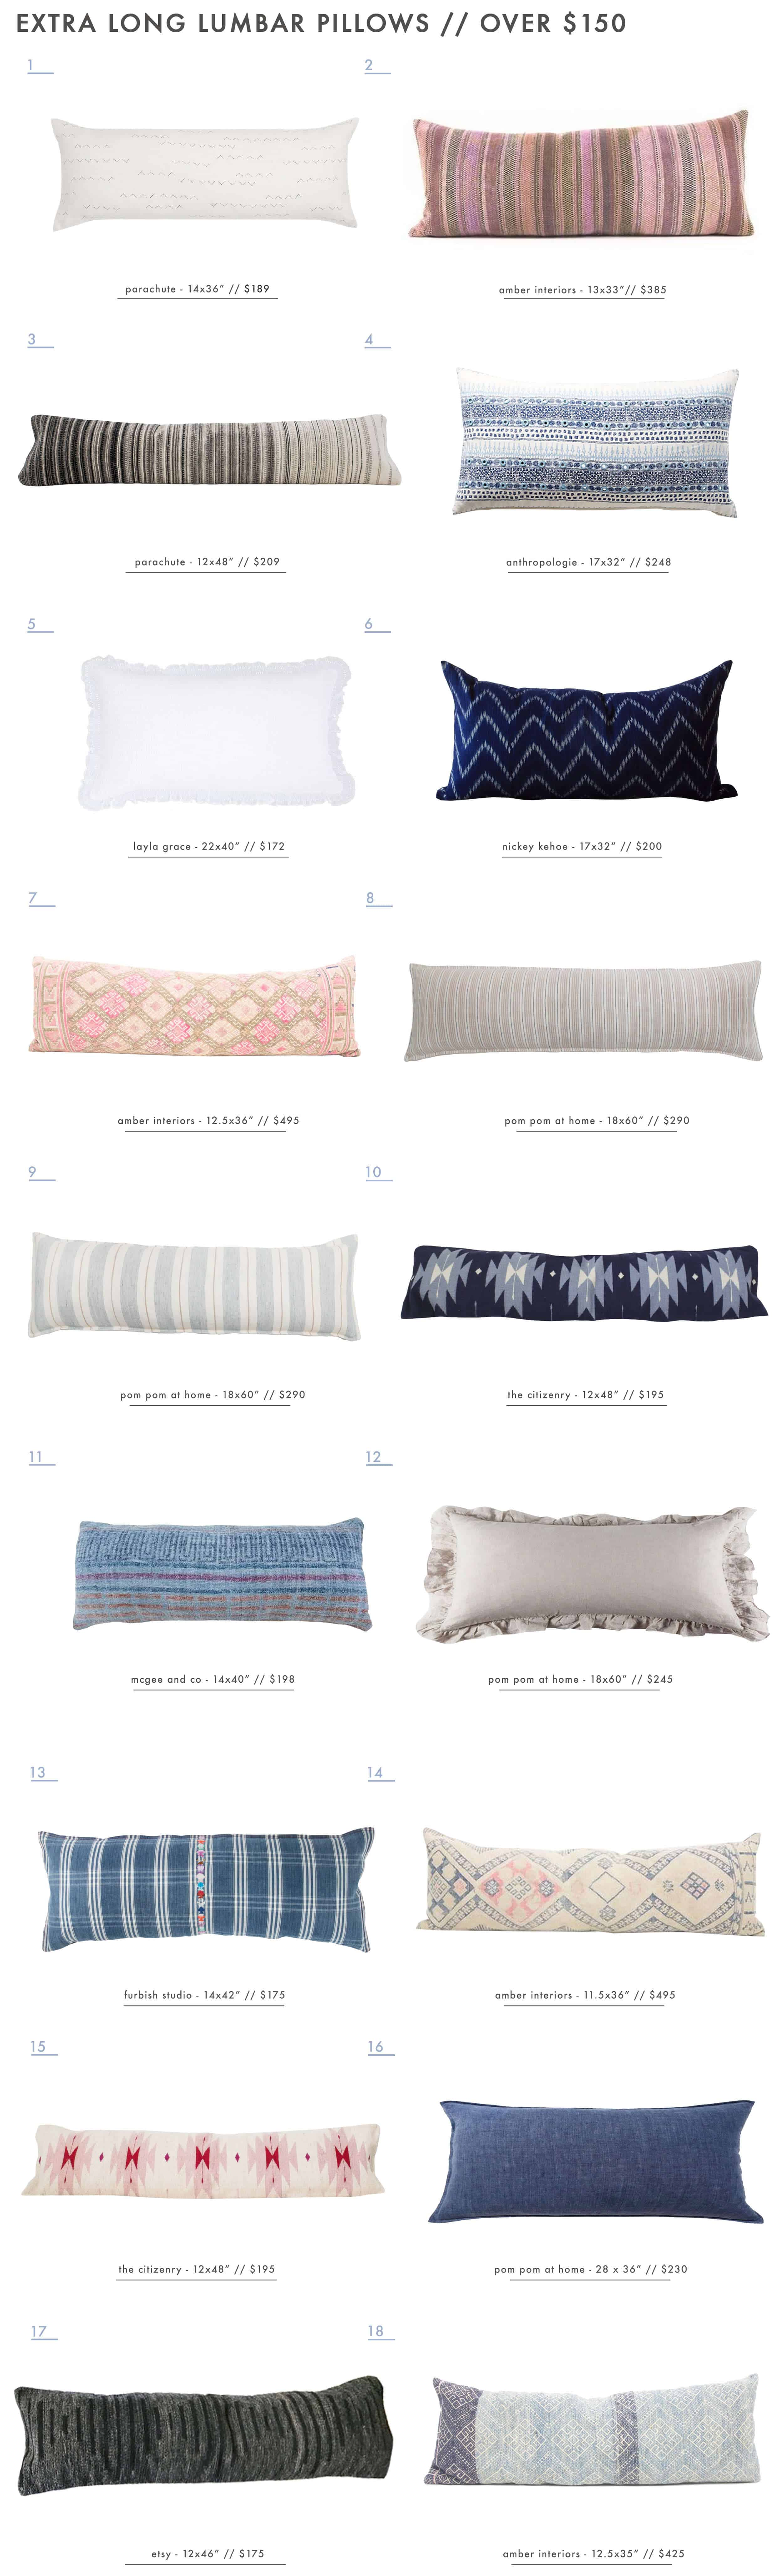 Emily-Henderson_Exra-Long_Lumbar-Pillows_Roundup_Over-150